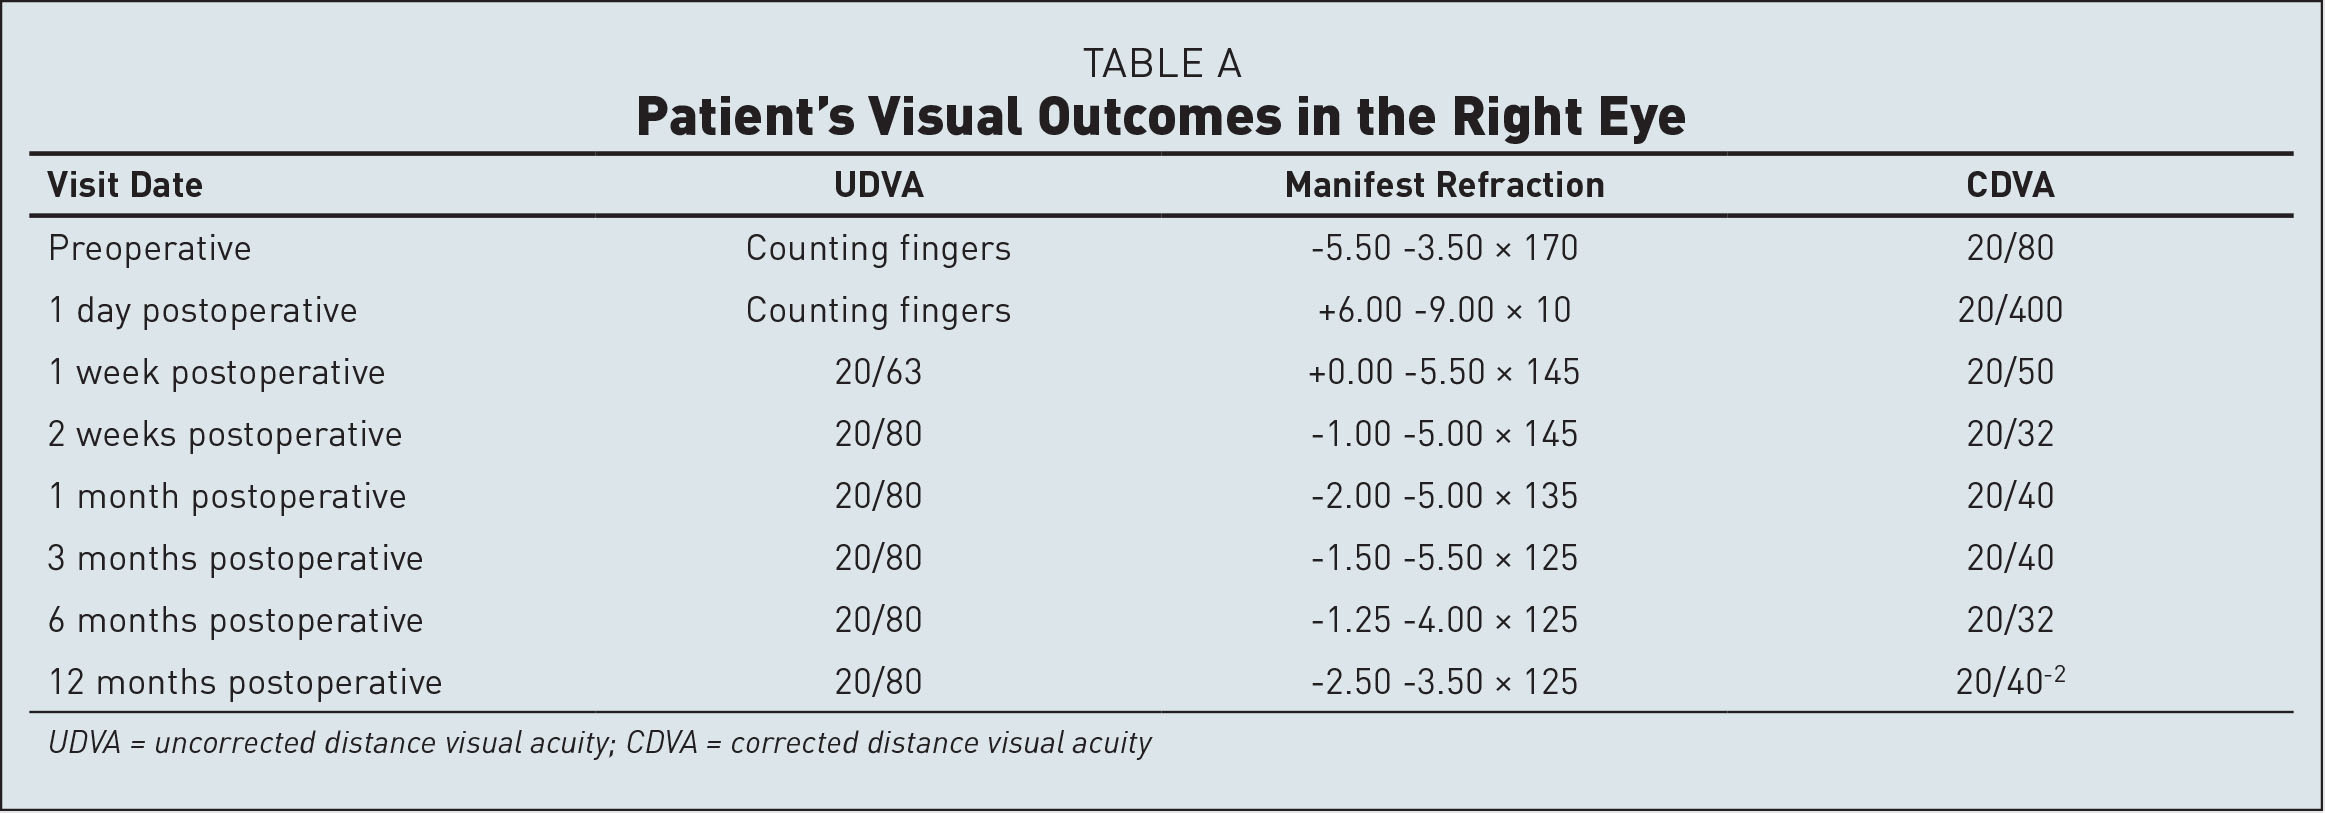 Patient's Visual Outcomes in the Right Eye